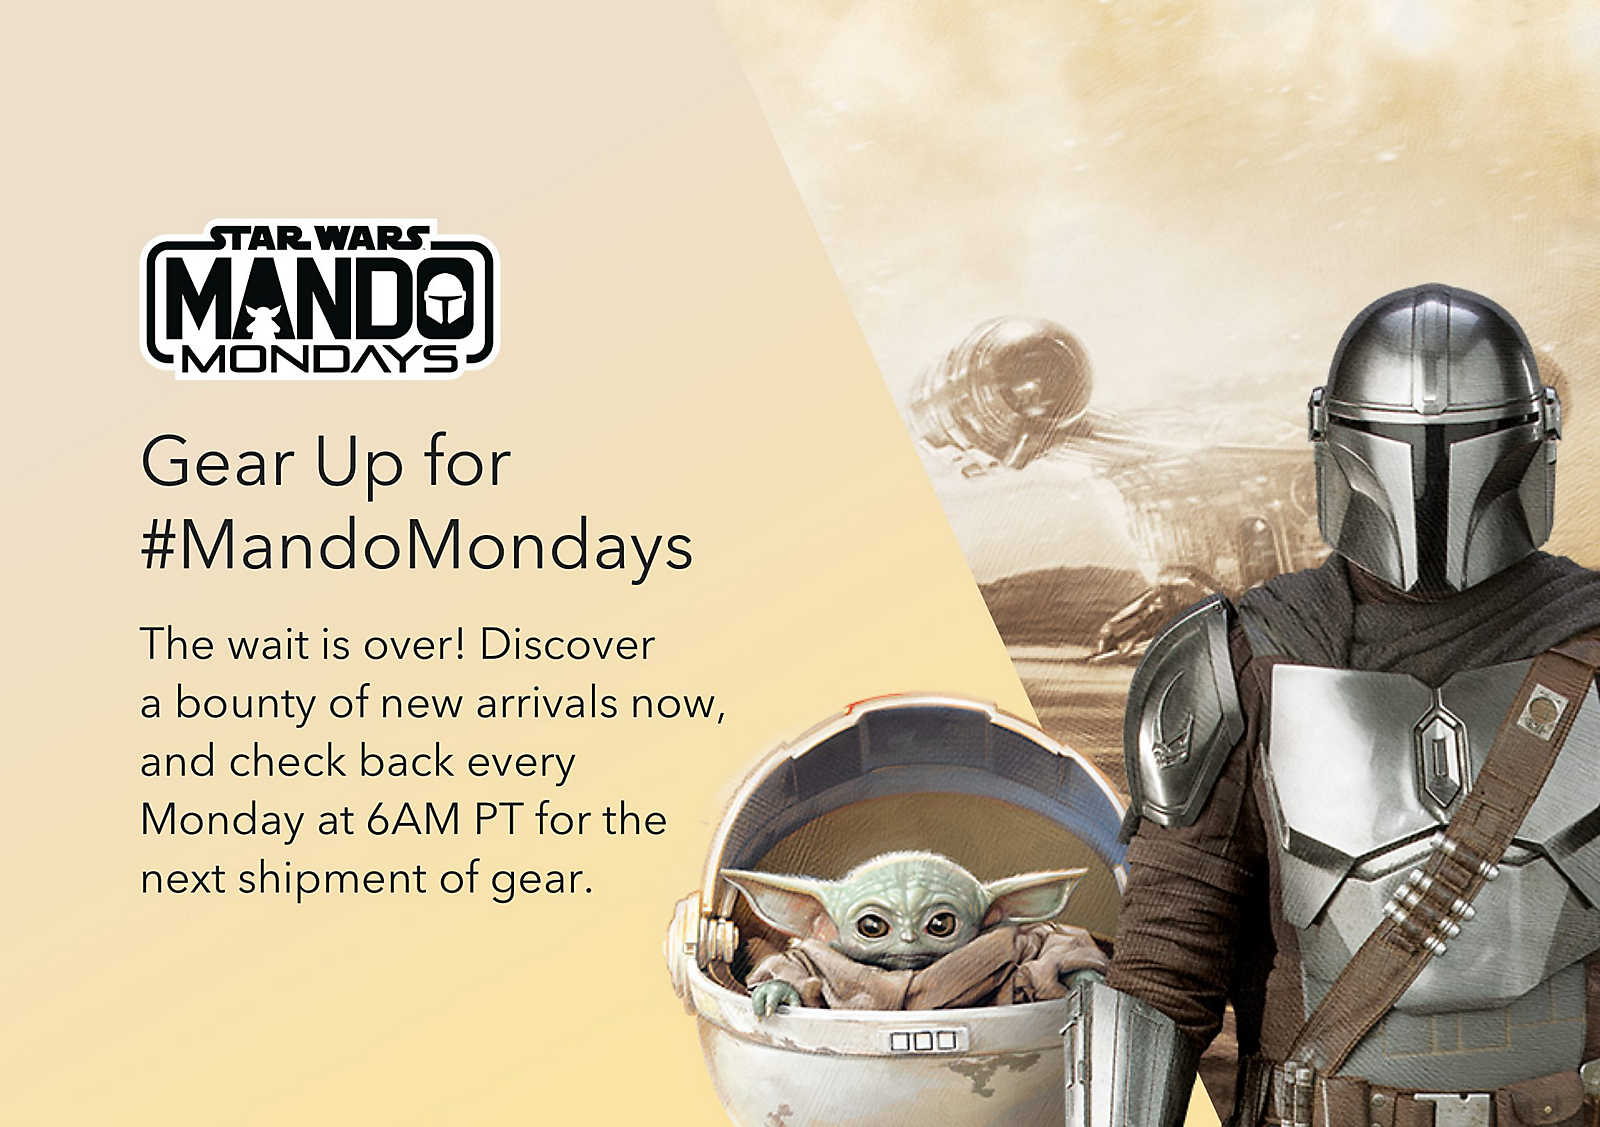 Gear Up for #MandoMondays.  The wait is over! Discover a bounty of new arrivals now, and check back every Monday at 6AM PT for the next shipment of gear.  Shop The Mandalorian